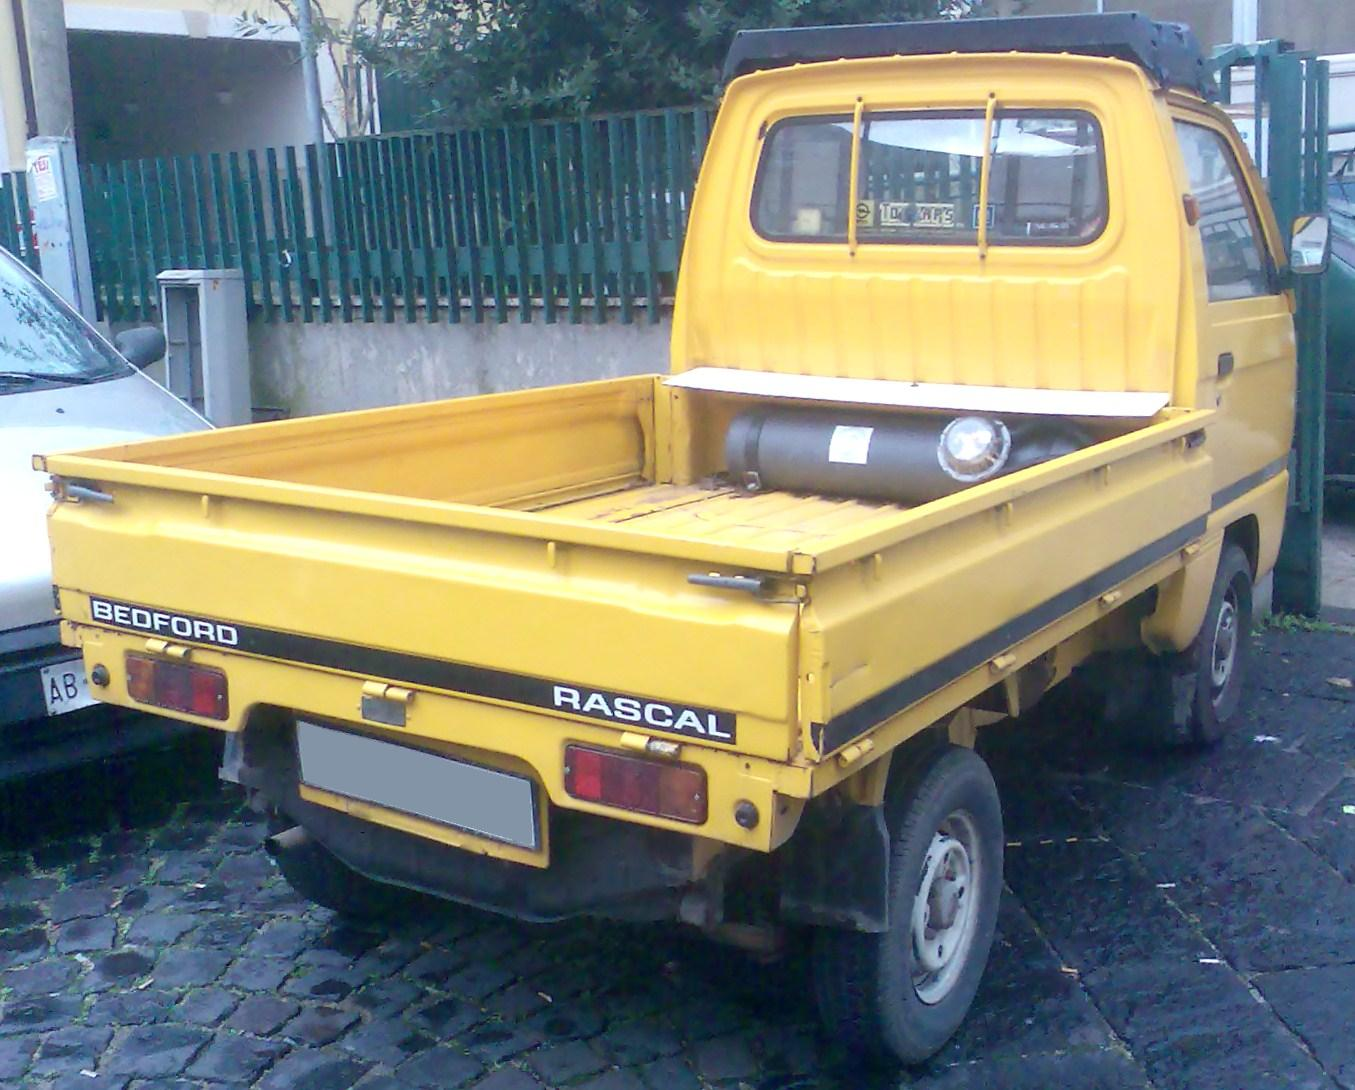 Pickup For Sale: Bedford Rascal Pickup For Sale